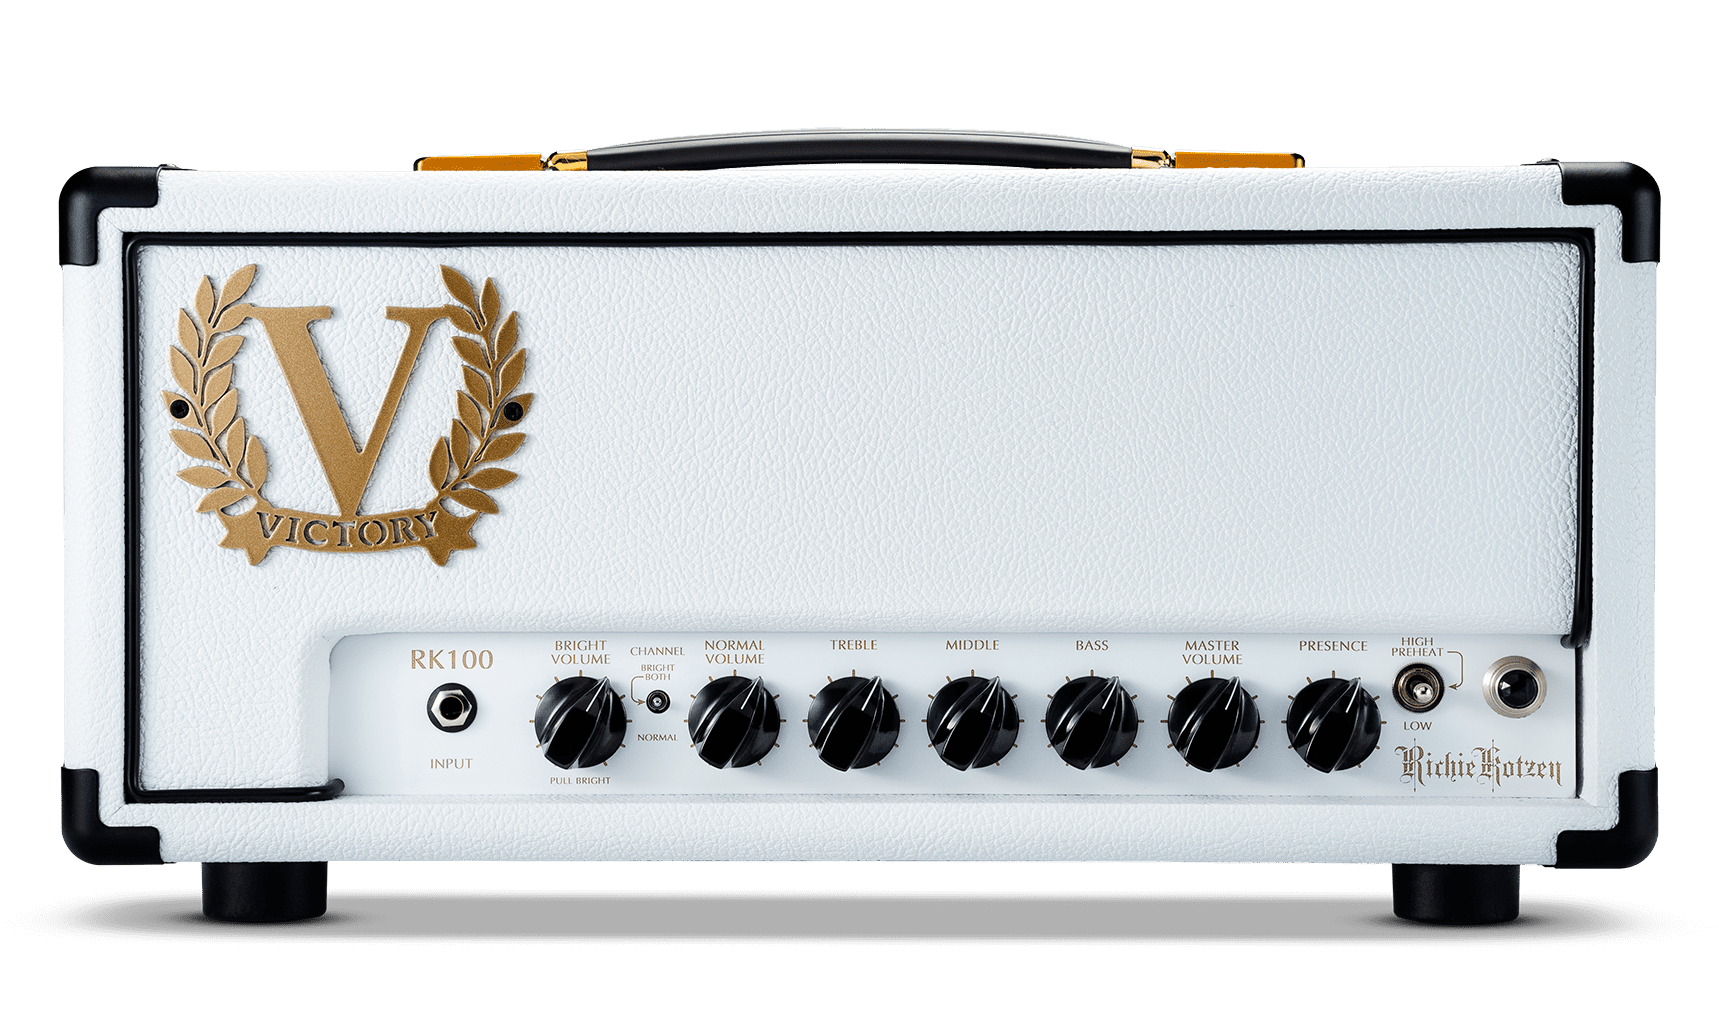 Victory Amplification Richie Kotzen RK100